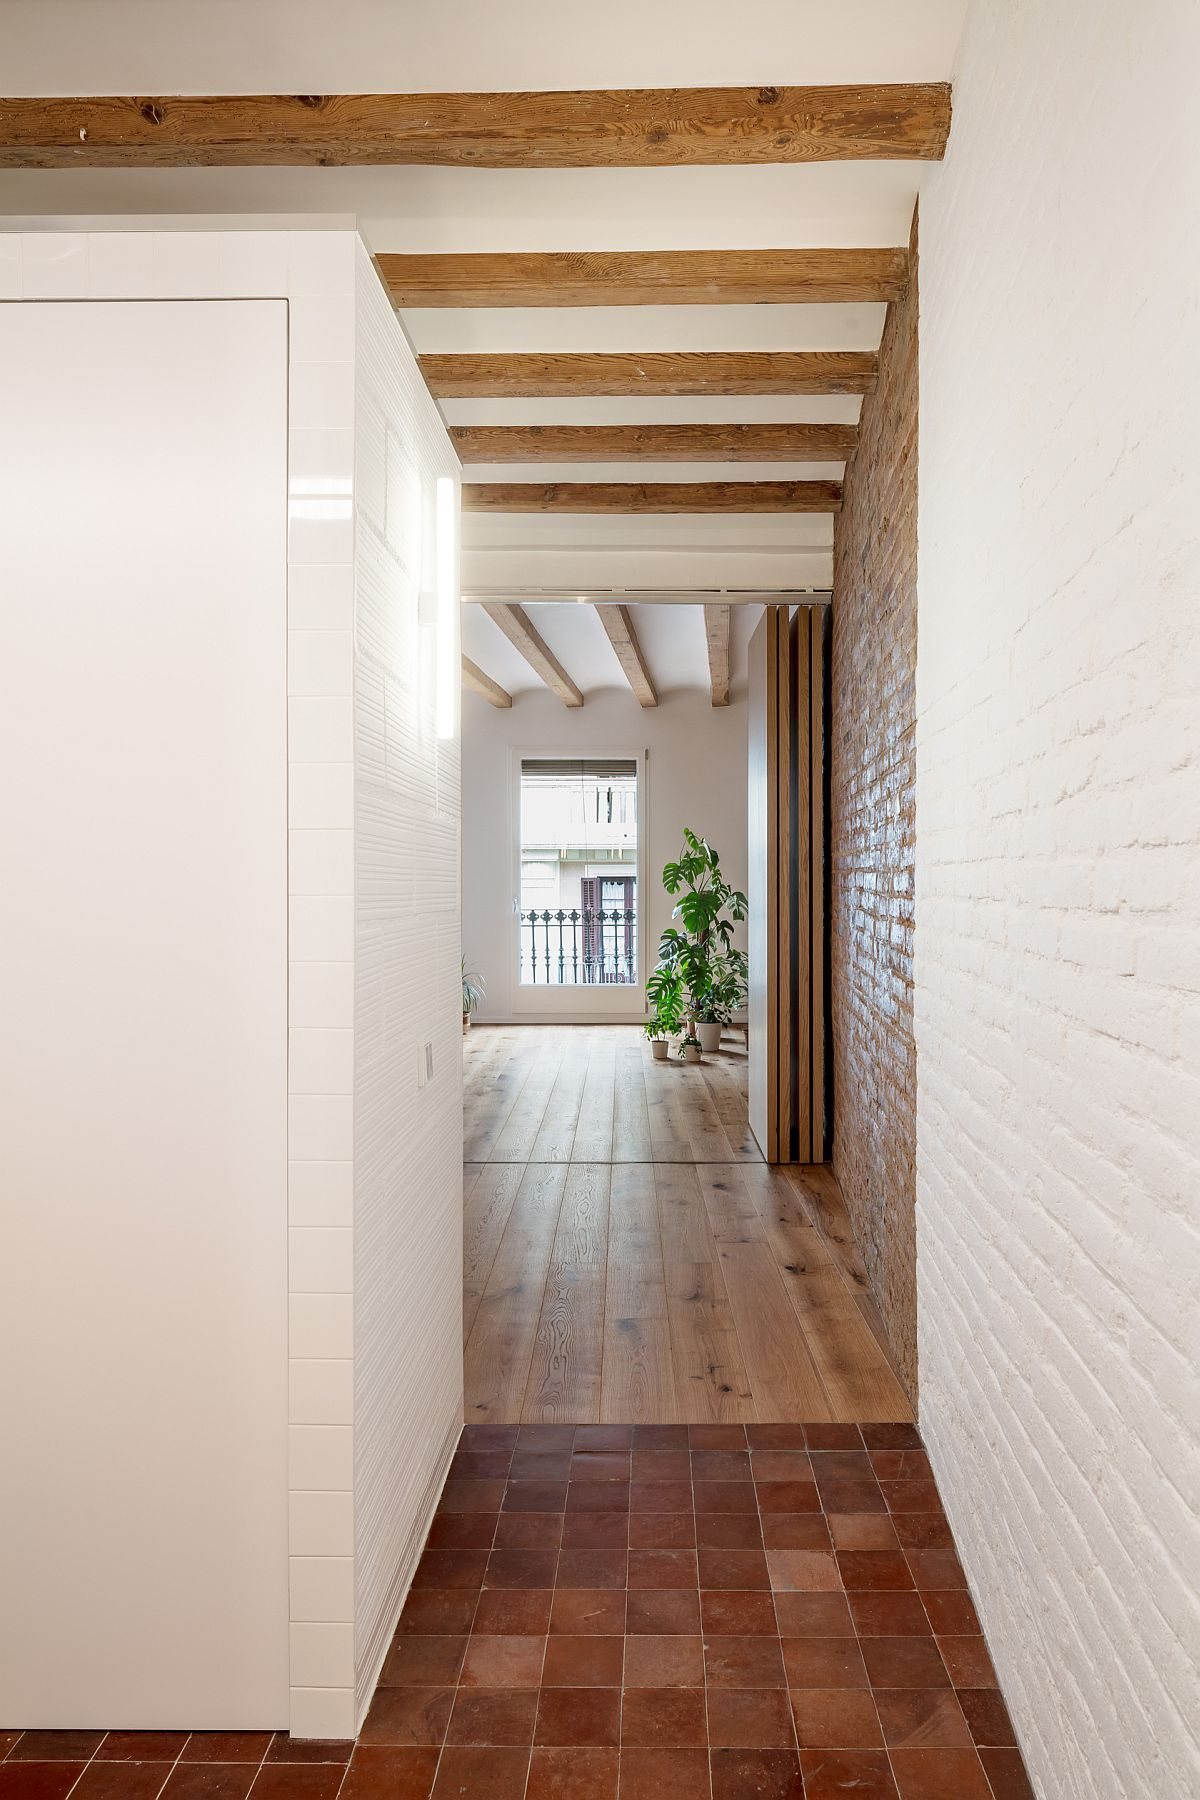 Painted brick walls and exposed ceilings beams give the apartment a traditional look